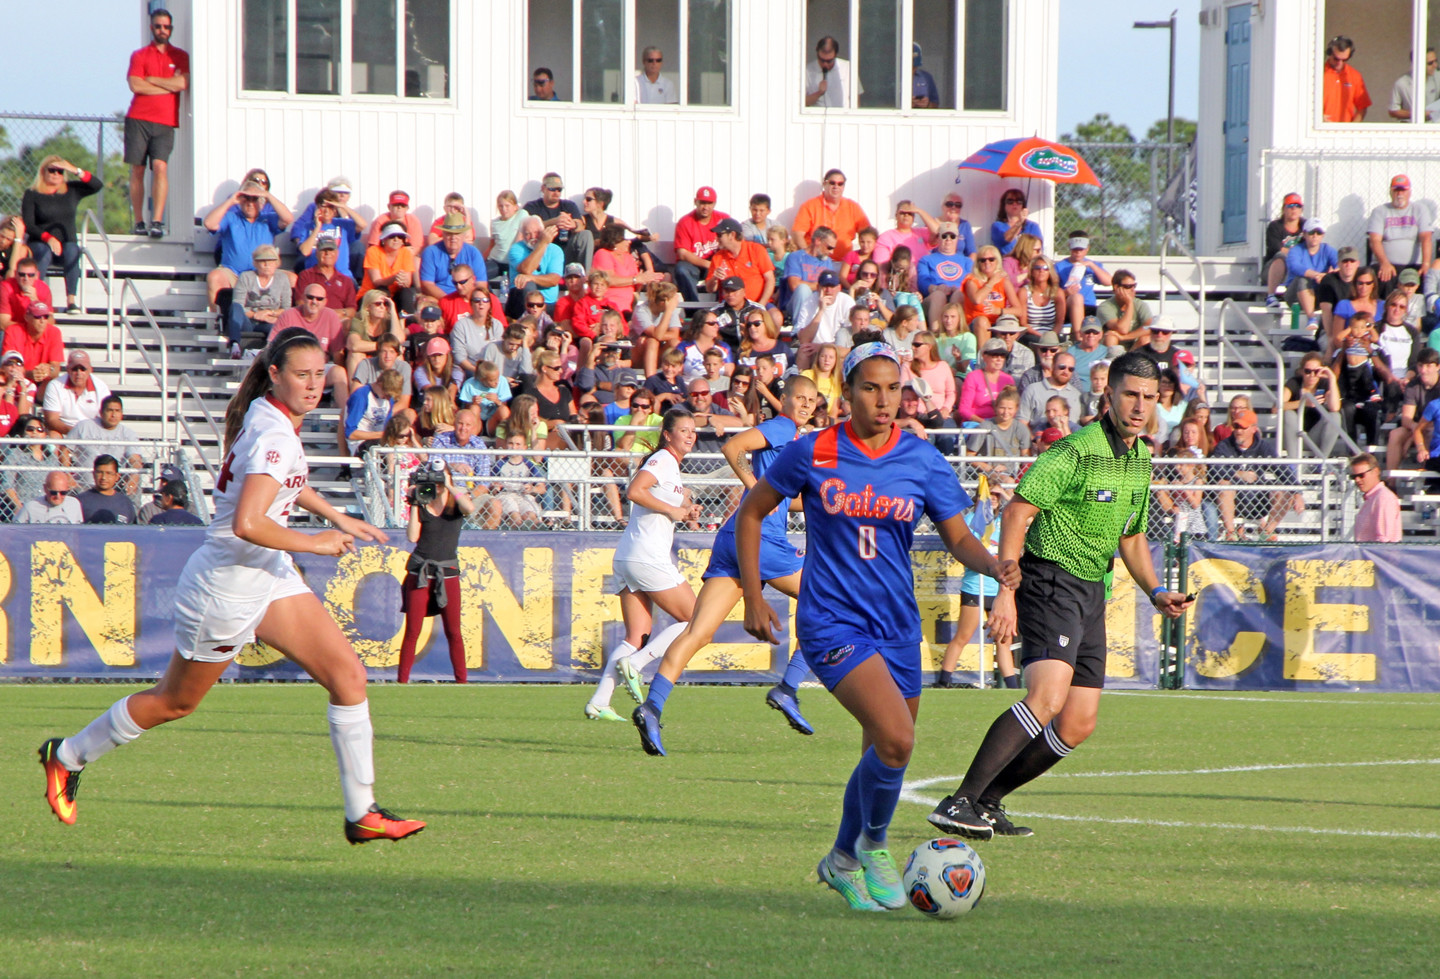 The SEC Women's Soccer Championship returns to the Orange Beach Sportsplex from Oct. 29 to Nov. 5. Youth soccer teams are encouraged to participate in the Alabama Soccer Festival on Nov. 3 and Alabama Soccer Association's (ASA) Target United Cup Nov. 4-5.